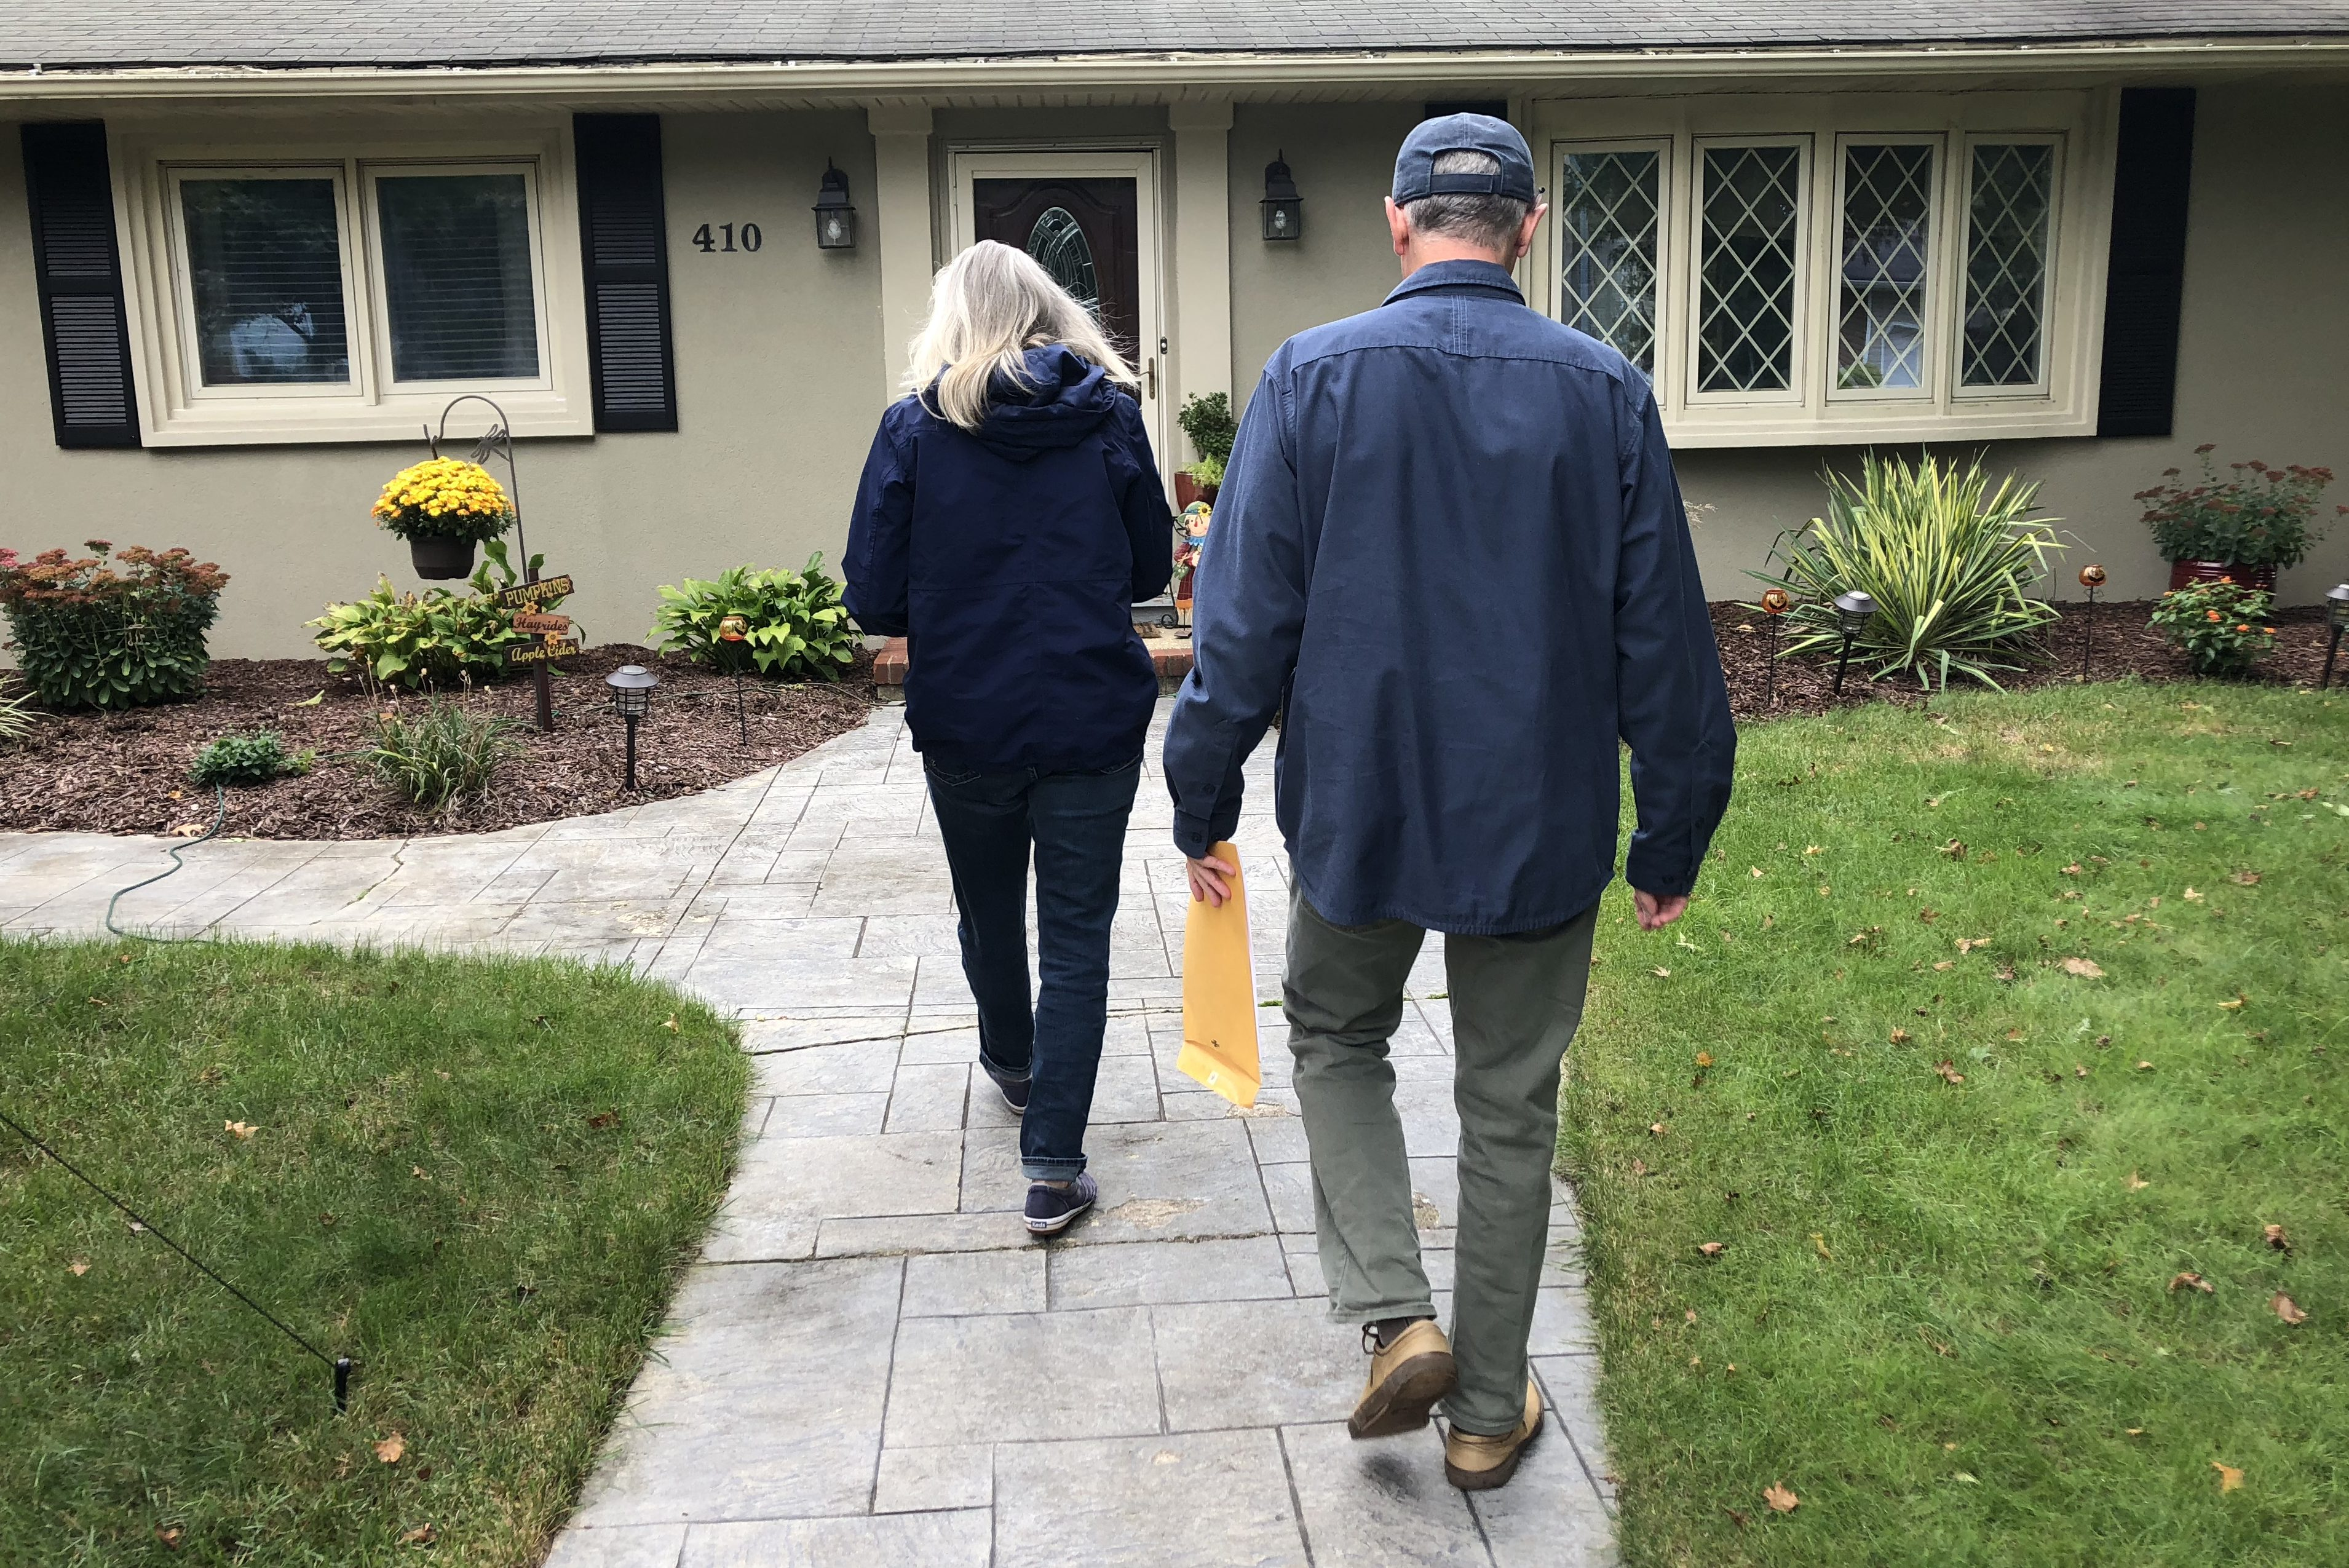 Judd Wampole and Laura Docherty of Brick Township went canvassing for the first time in their neighborhood on behalf of Andy Kim, congressional candidate running against Rep. Tom MacArthur.